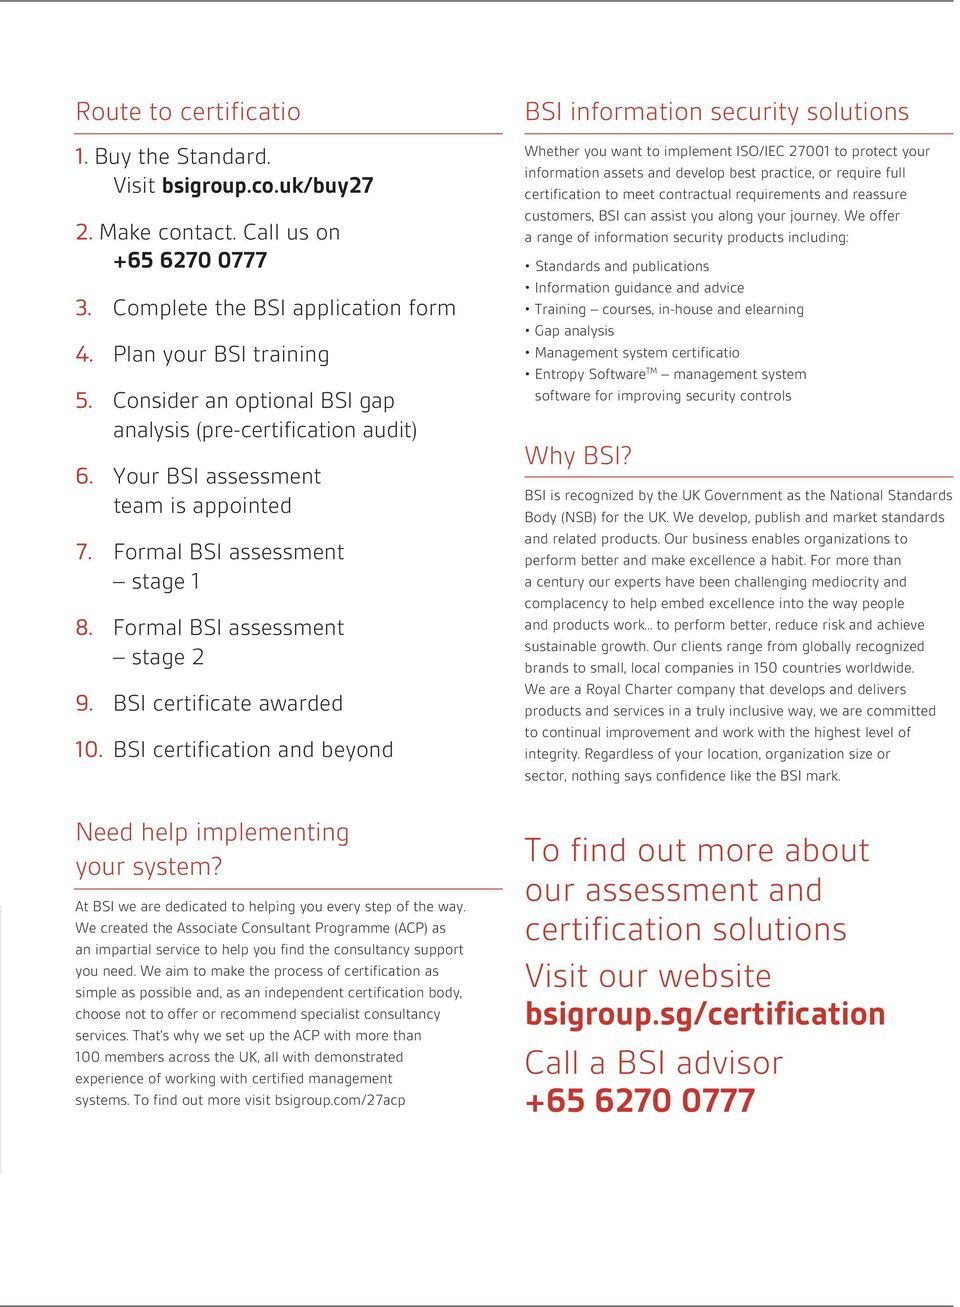 BSI certificate awarded 10. BSI certification and beyond Need help implementing your system? At BSI we are dedicated to helping you every step of the way.